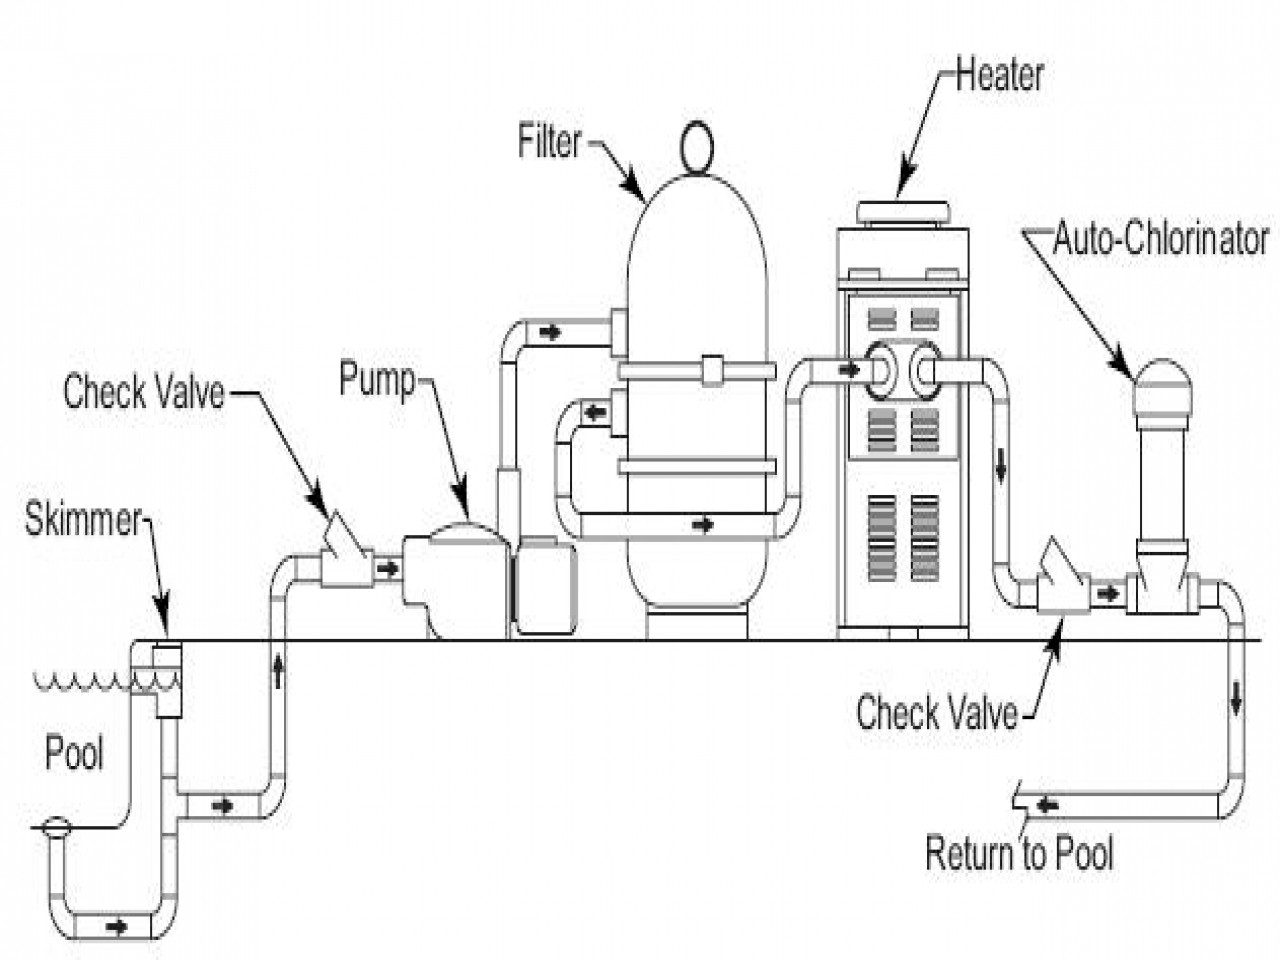 hight resolution of hayward super pump wiring diagram download hayward super pump diagram 17 n download wiring diagram pics detail name hayward super pump